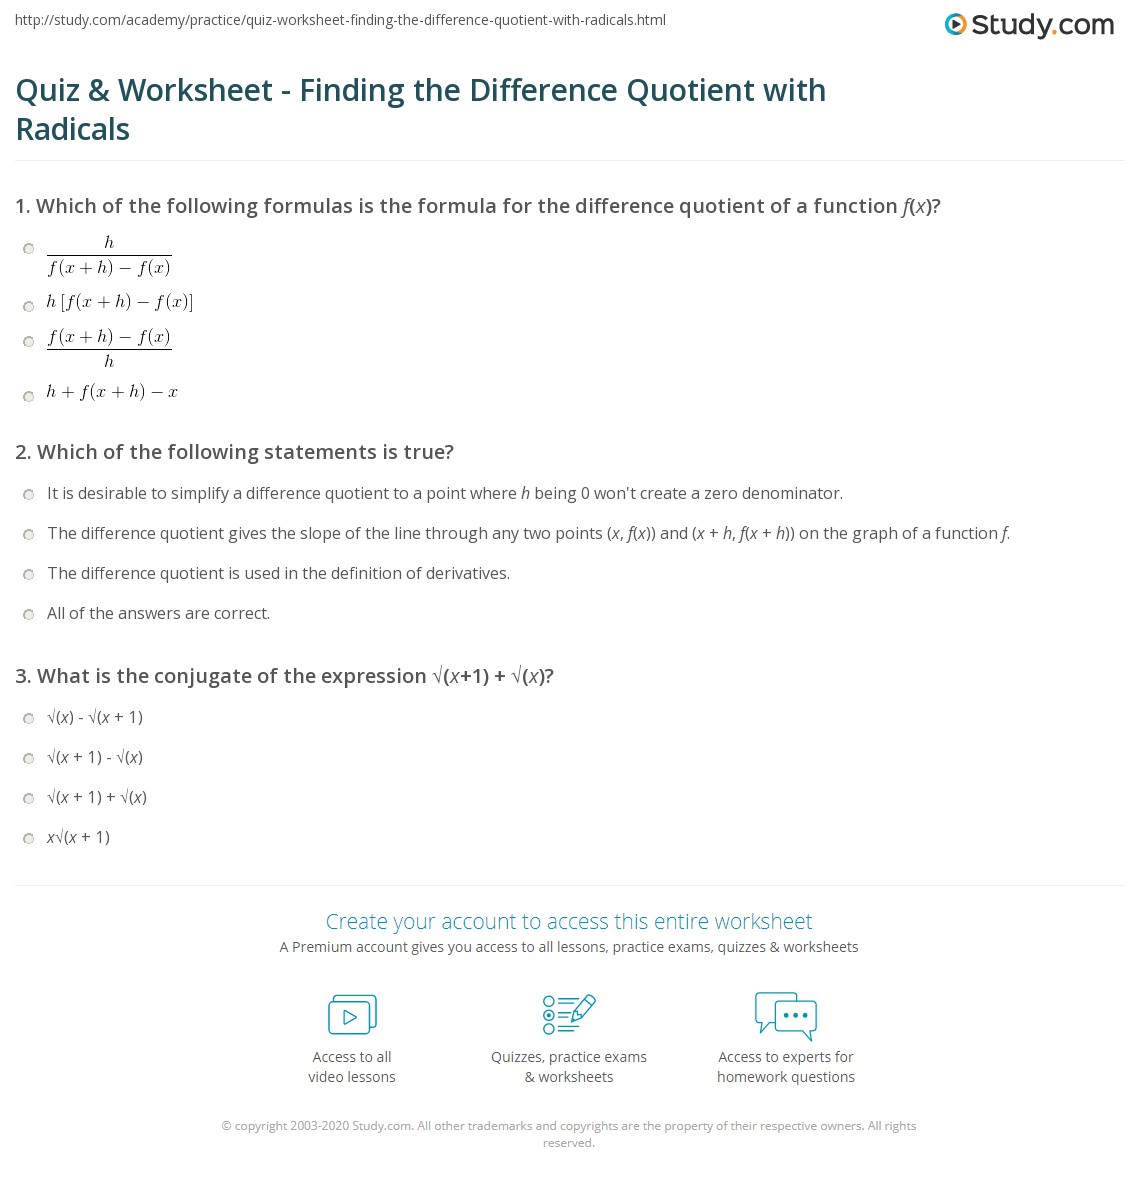 Worksheets Difference Quotient Worksheet quiz worksheet finding the difference quotient with radicals print how to find worksheet